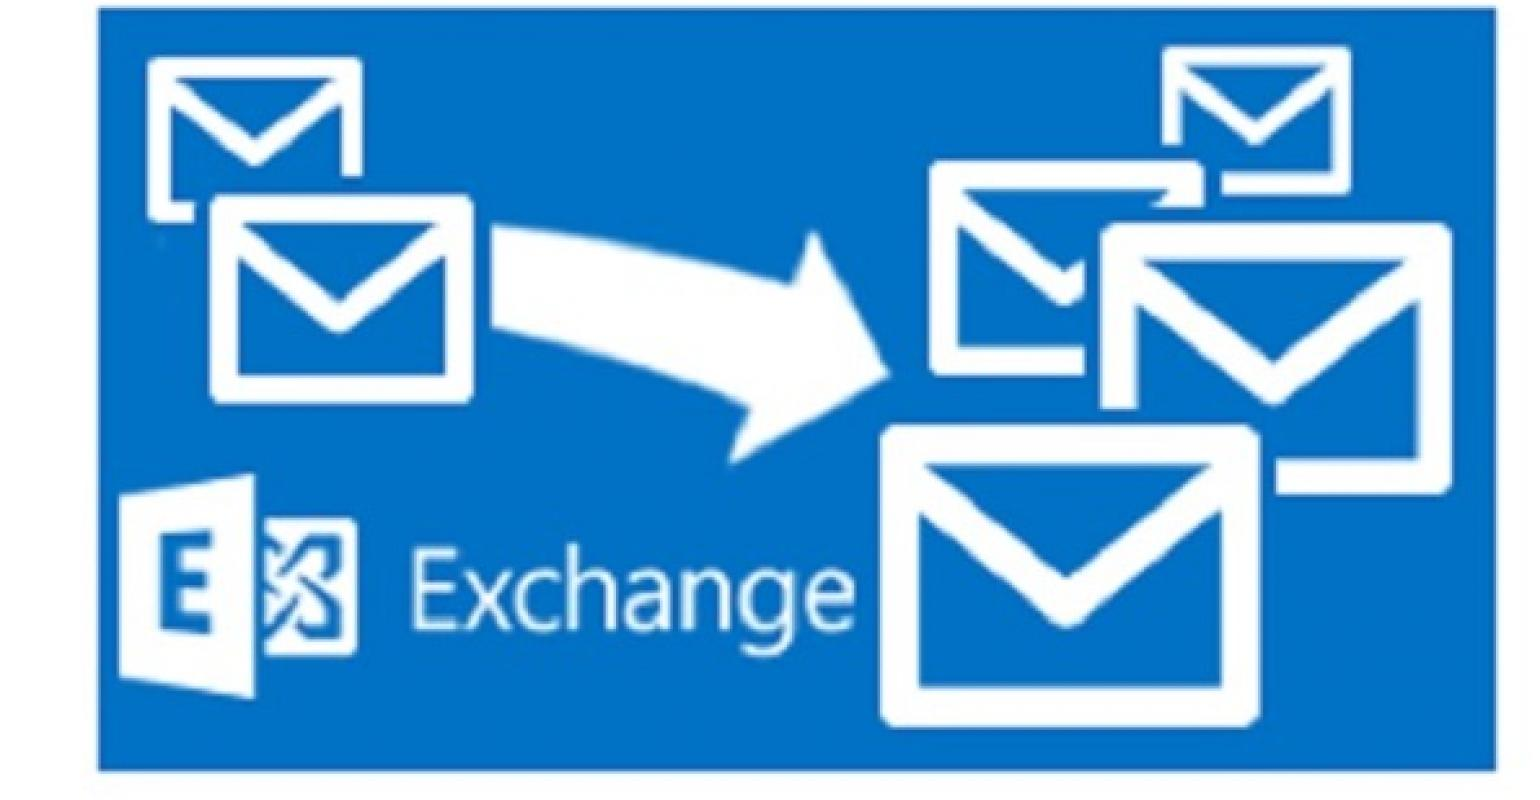 Exchange message tracing extended to 90 days in Office 365